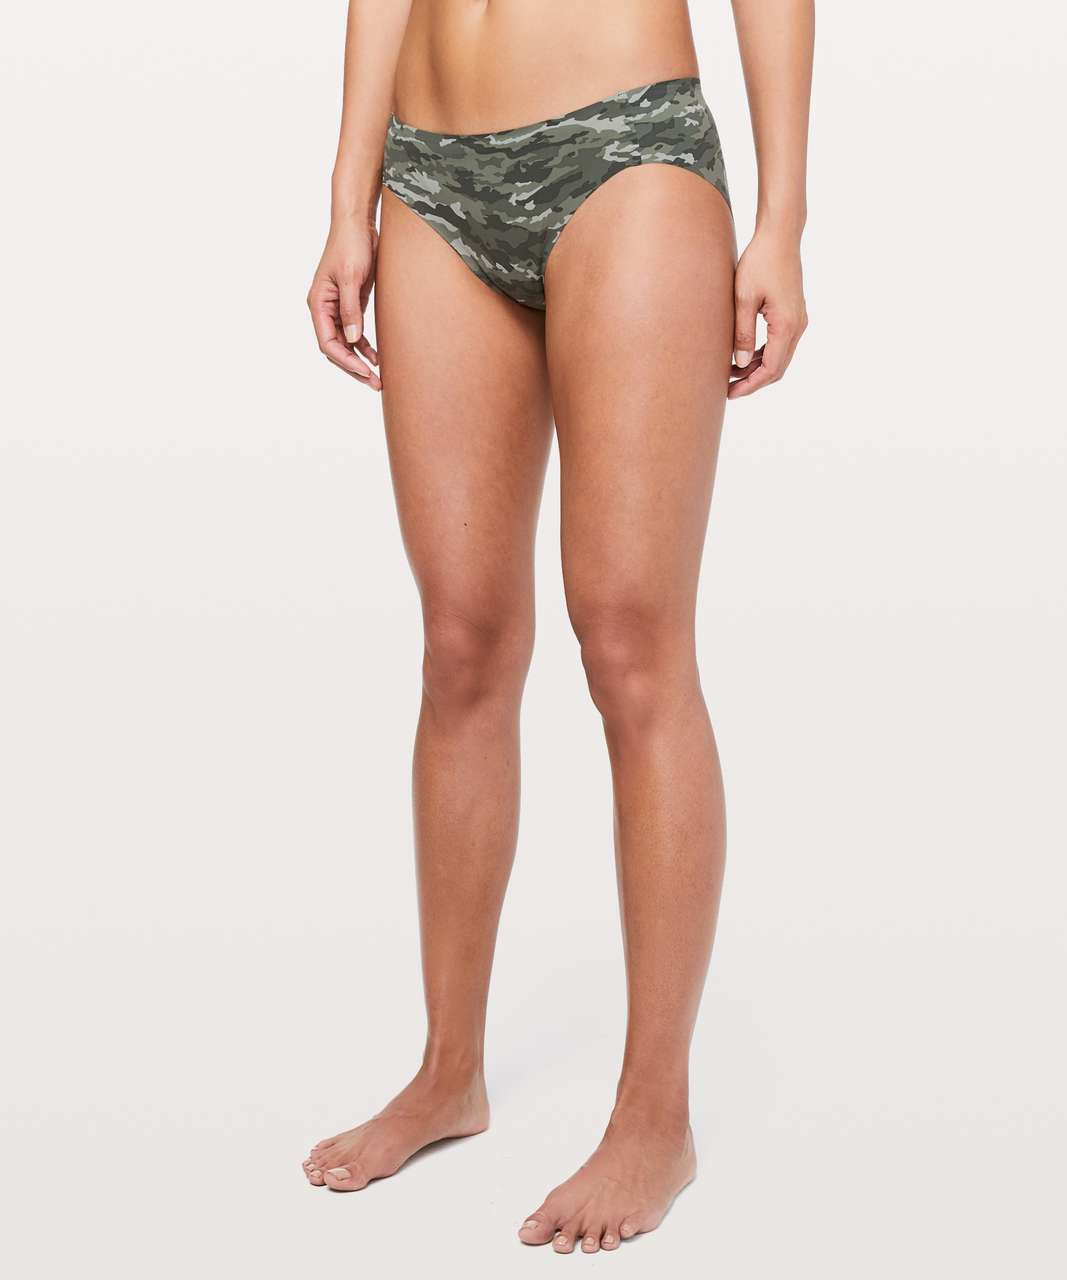 Lululemon Namastay Put Hipster - Evergreen Camo Green Multi